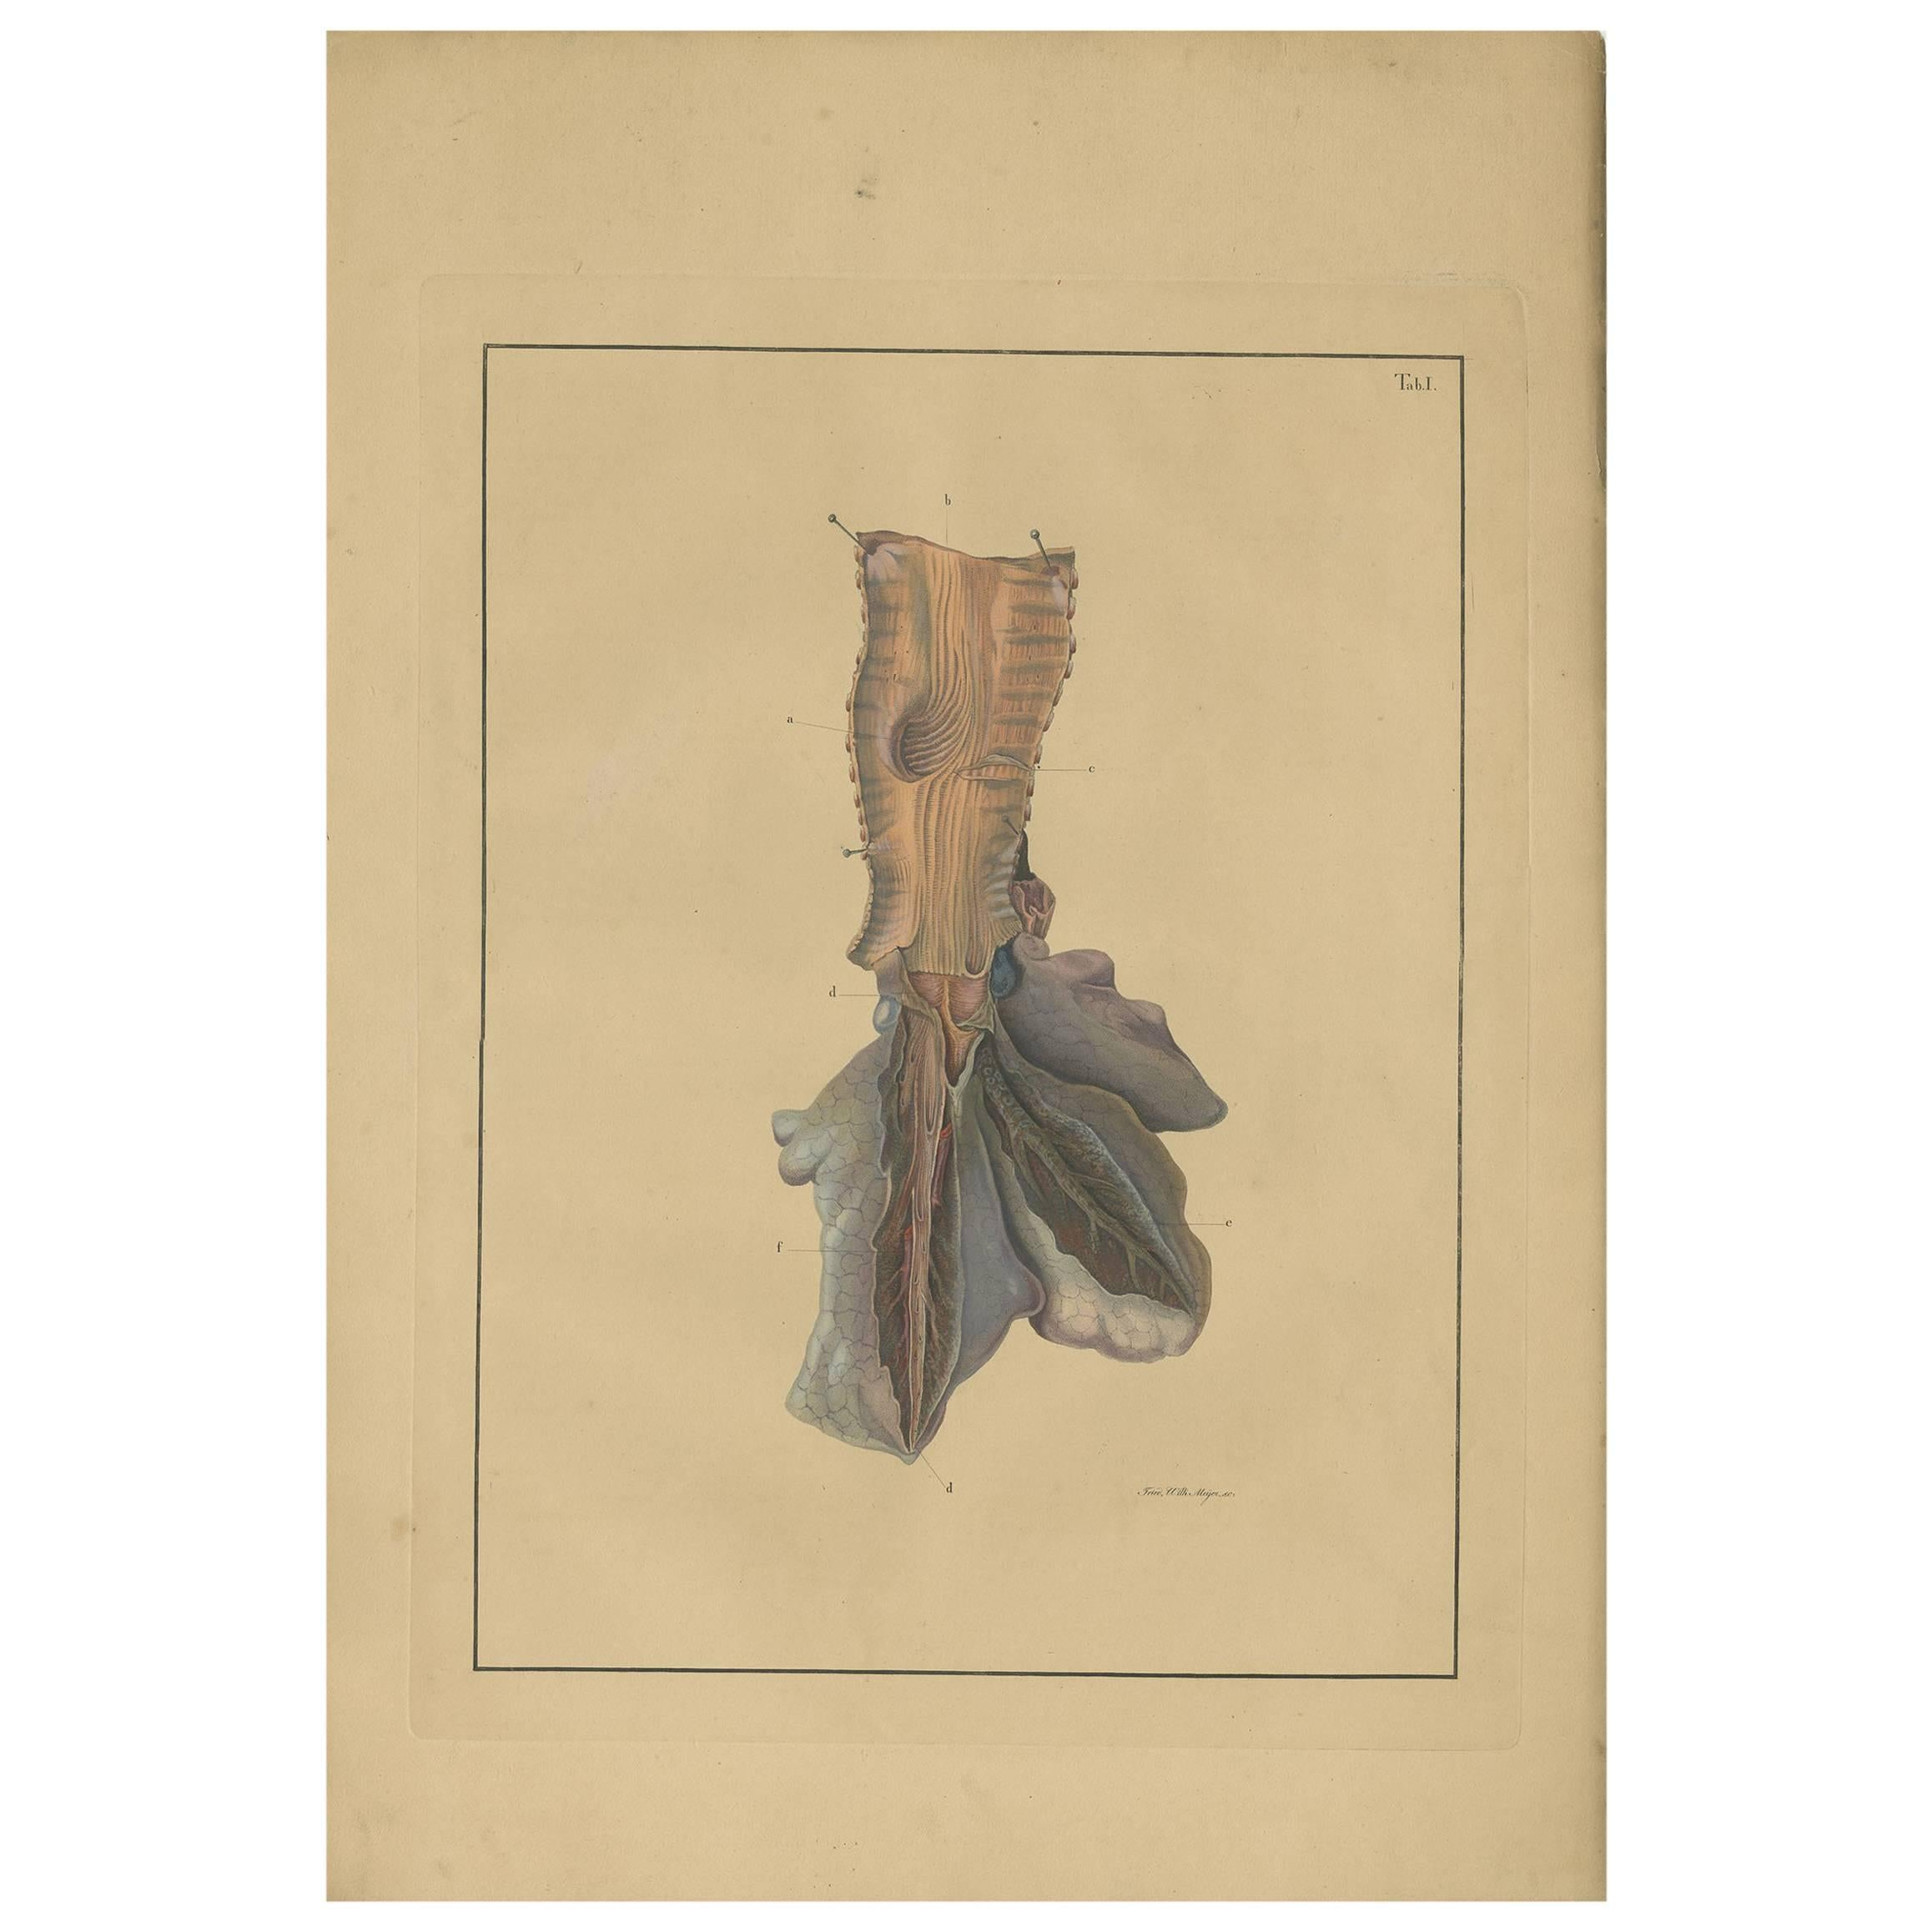 Antique Medical Print of Lungs 'Tab. 1' by F.D. Reisseisen, 1822